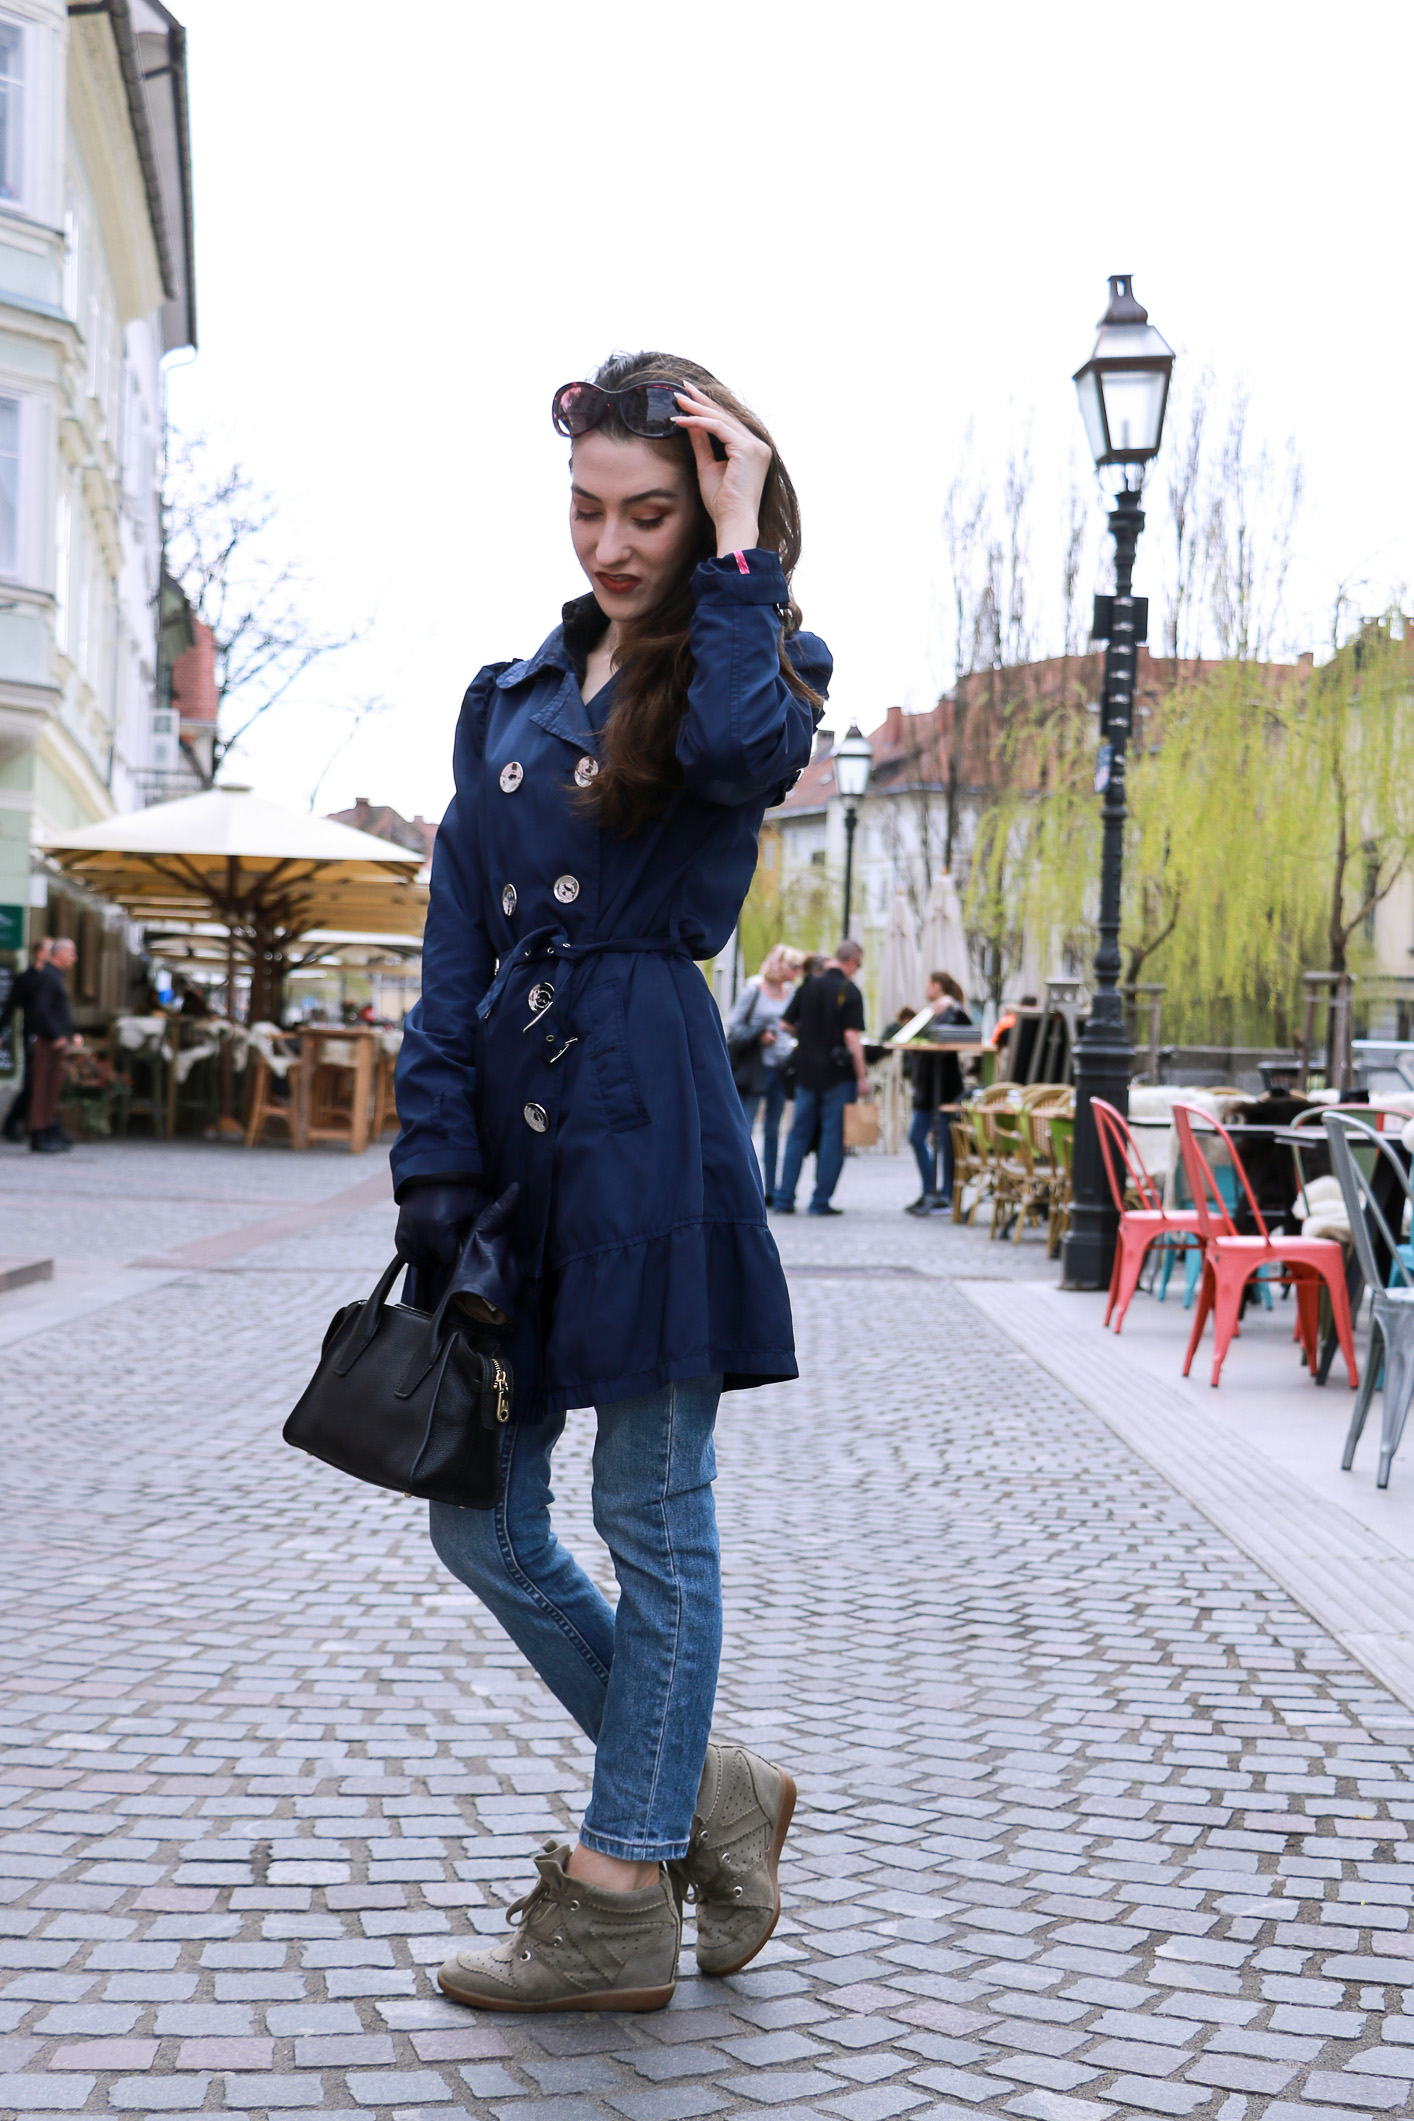 Fashion blogger Veronika Lipar of Brunette From Wall Street on how to wear ruffles to look chic not girly